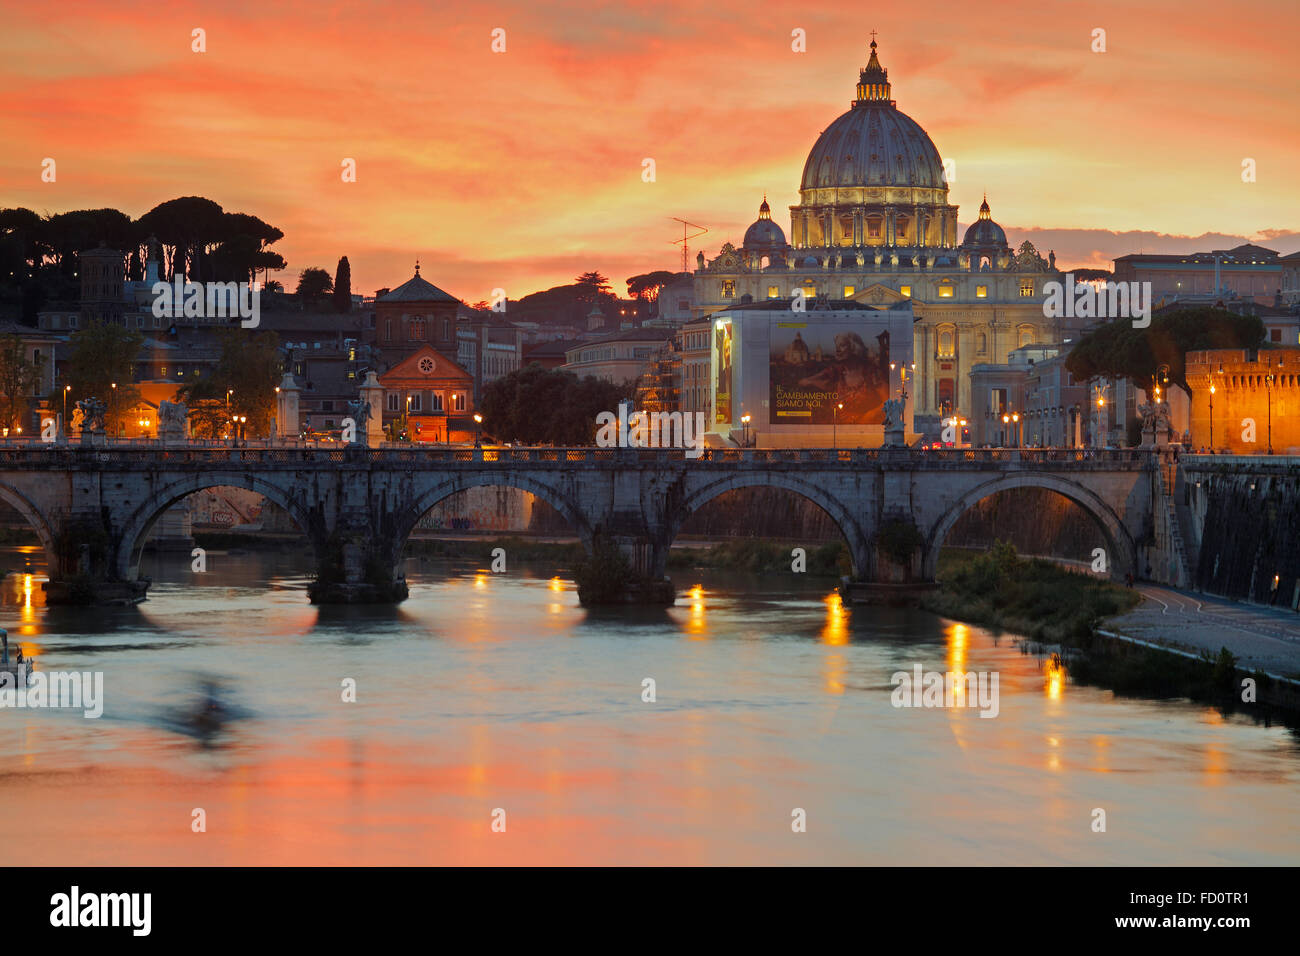 Tiber with Sant'Angelo bridge and the St. Peter's Basilica in Rome, Italy; the St. Peter's Basilica in Rome, Italy; Stock Photo